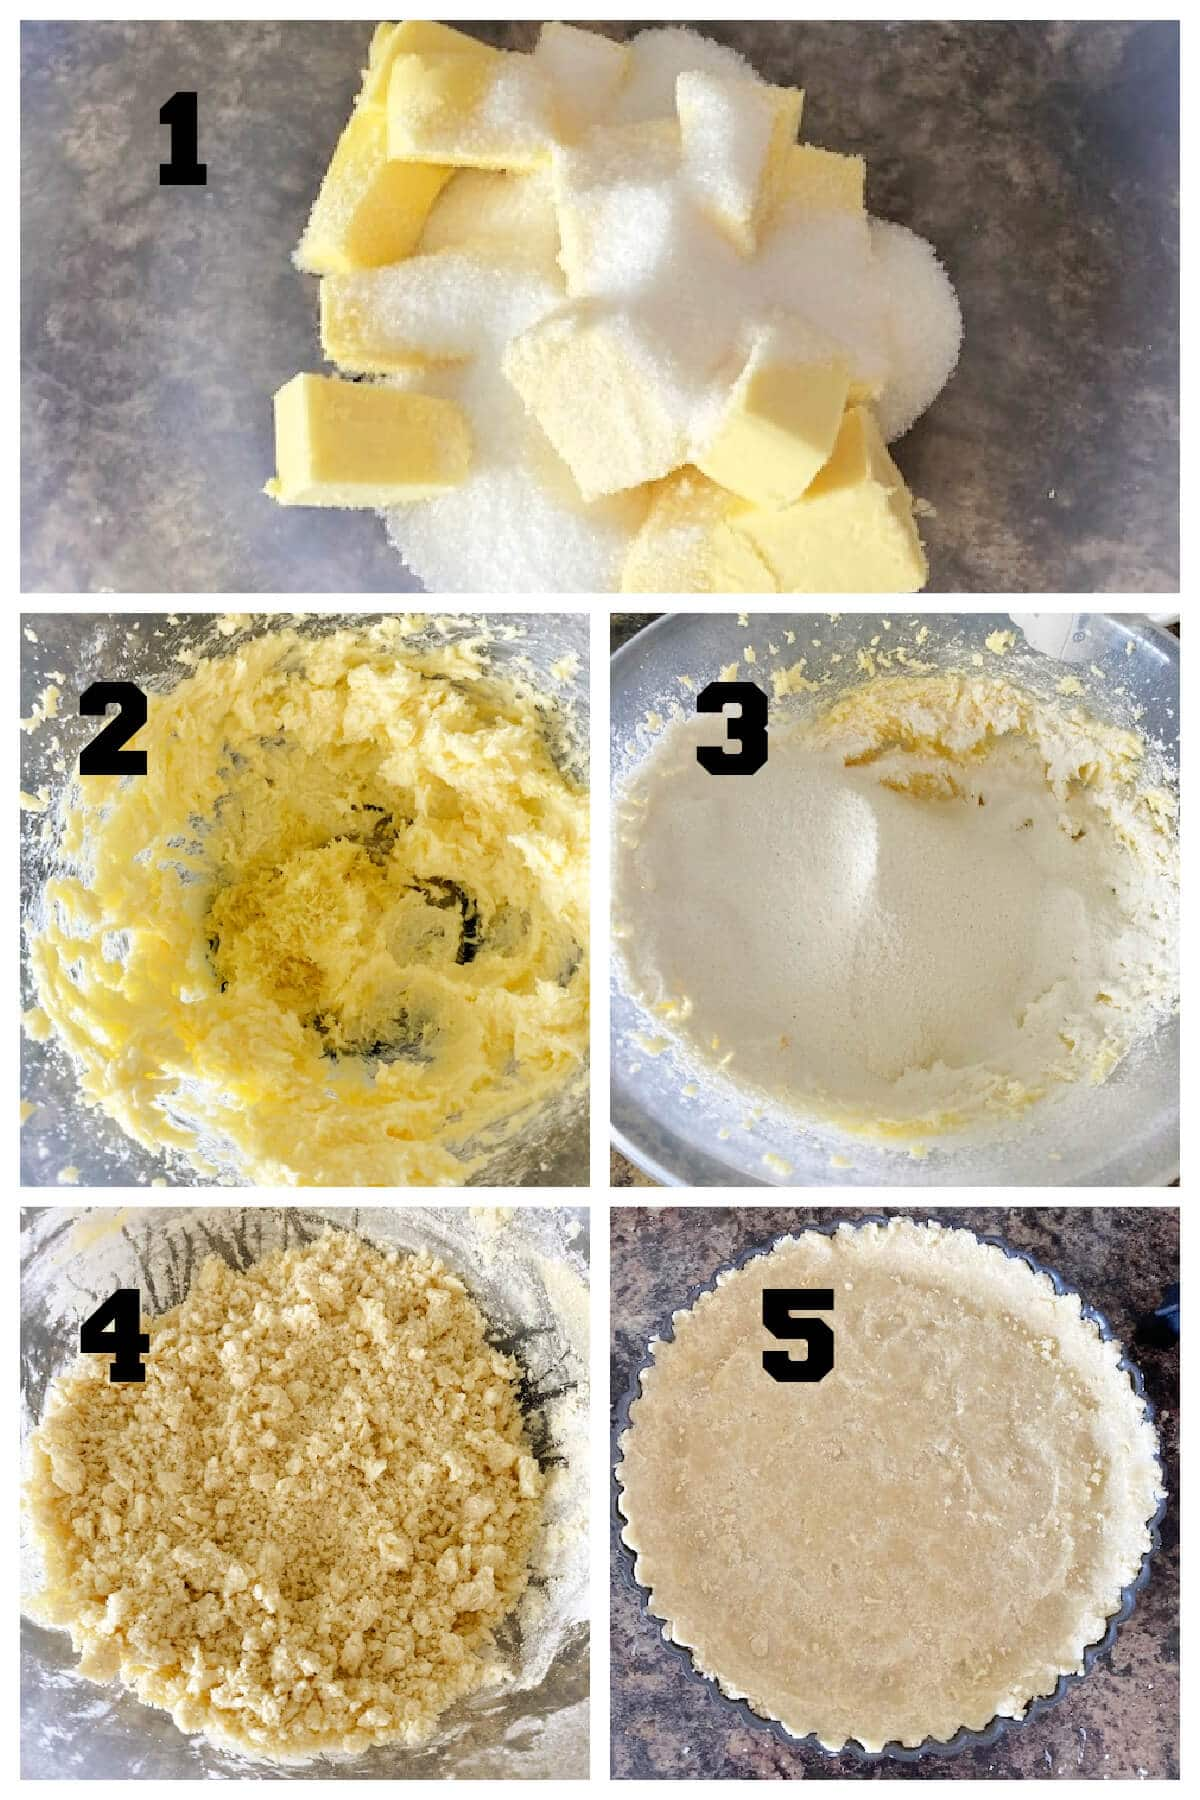 Collage pf 5 photos to show how to make the crust for the blueberry pie